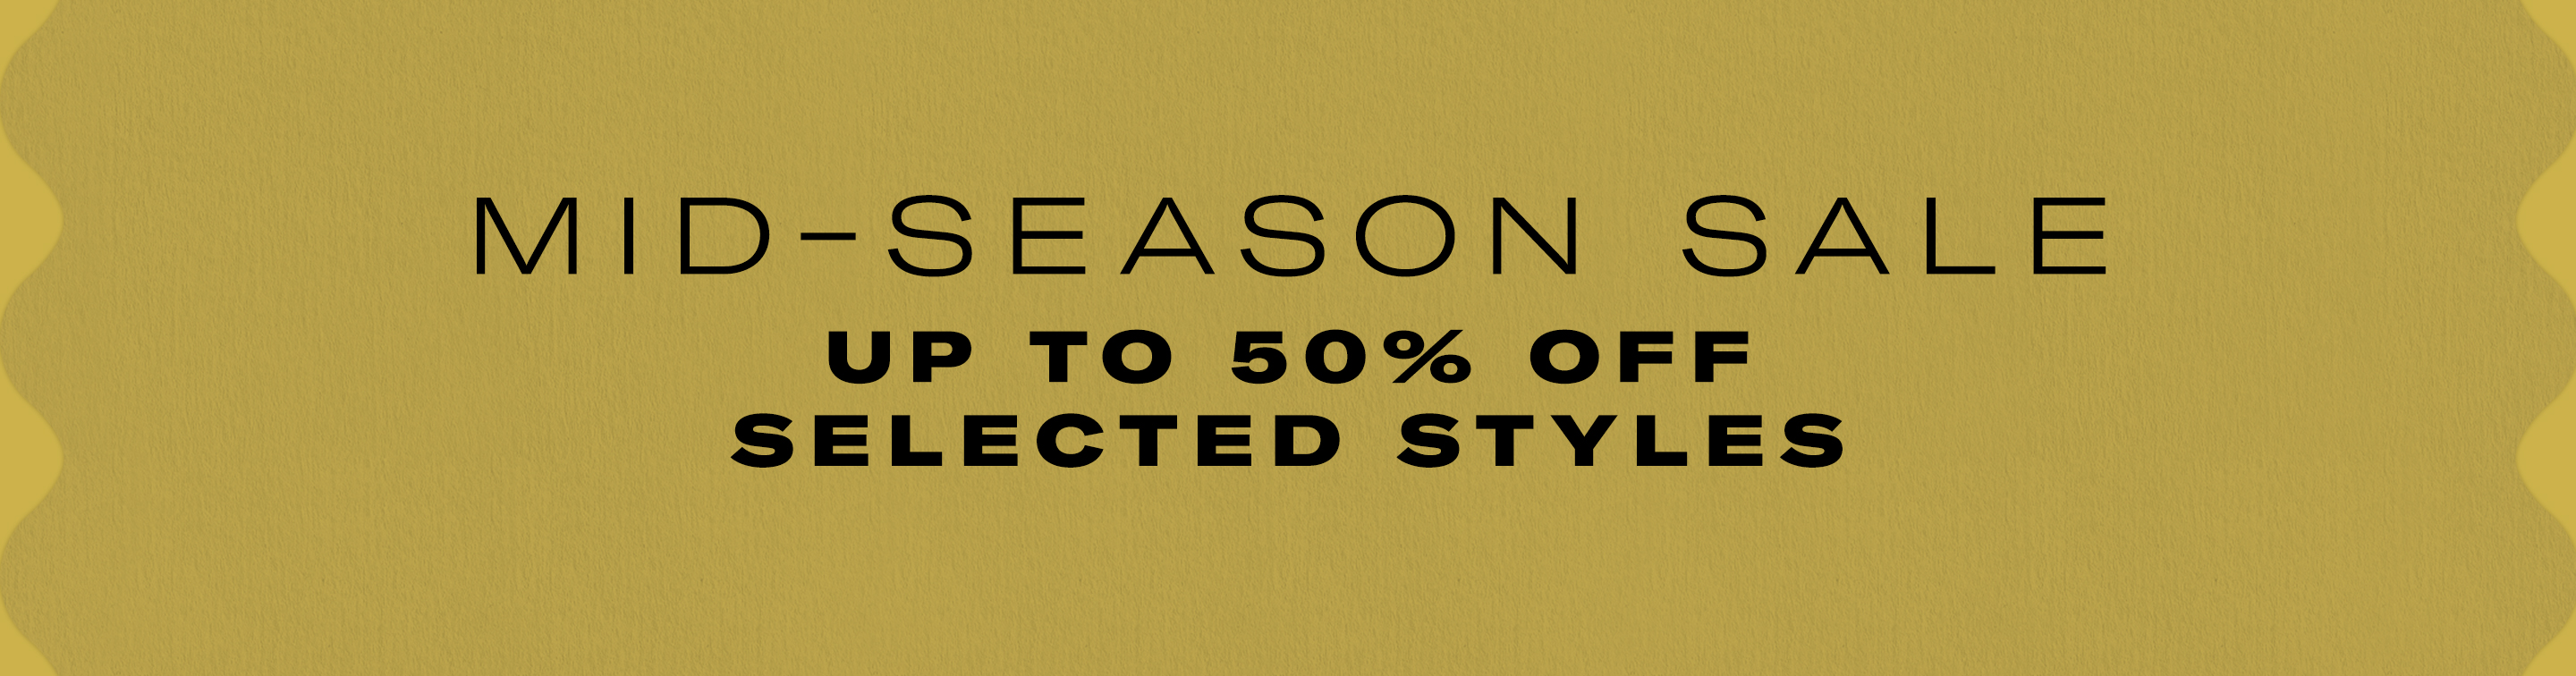 Mid-season sale 50% off select styles